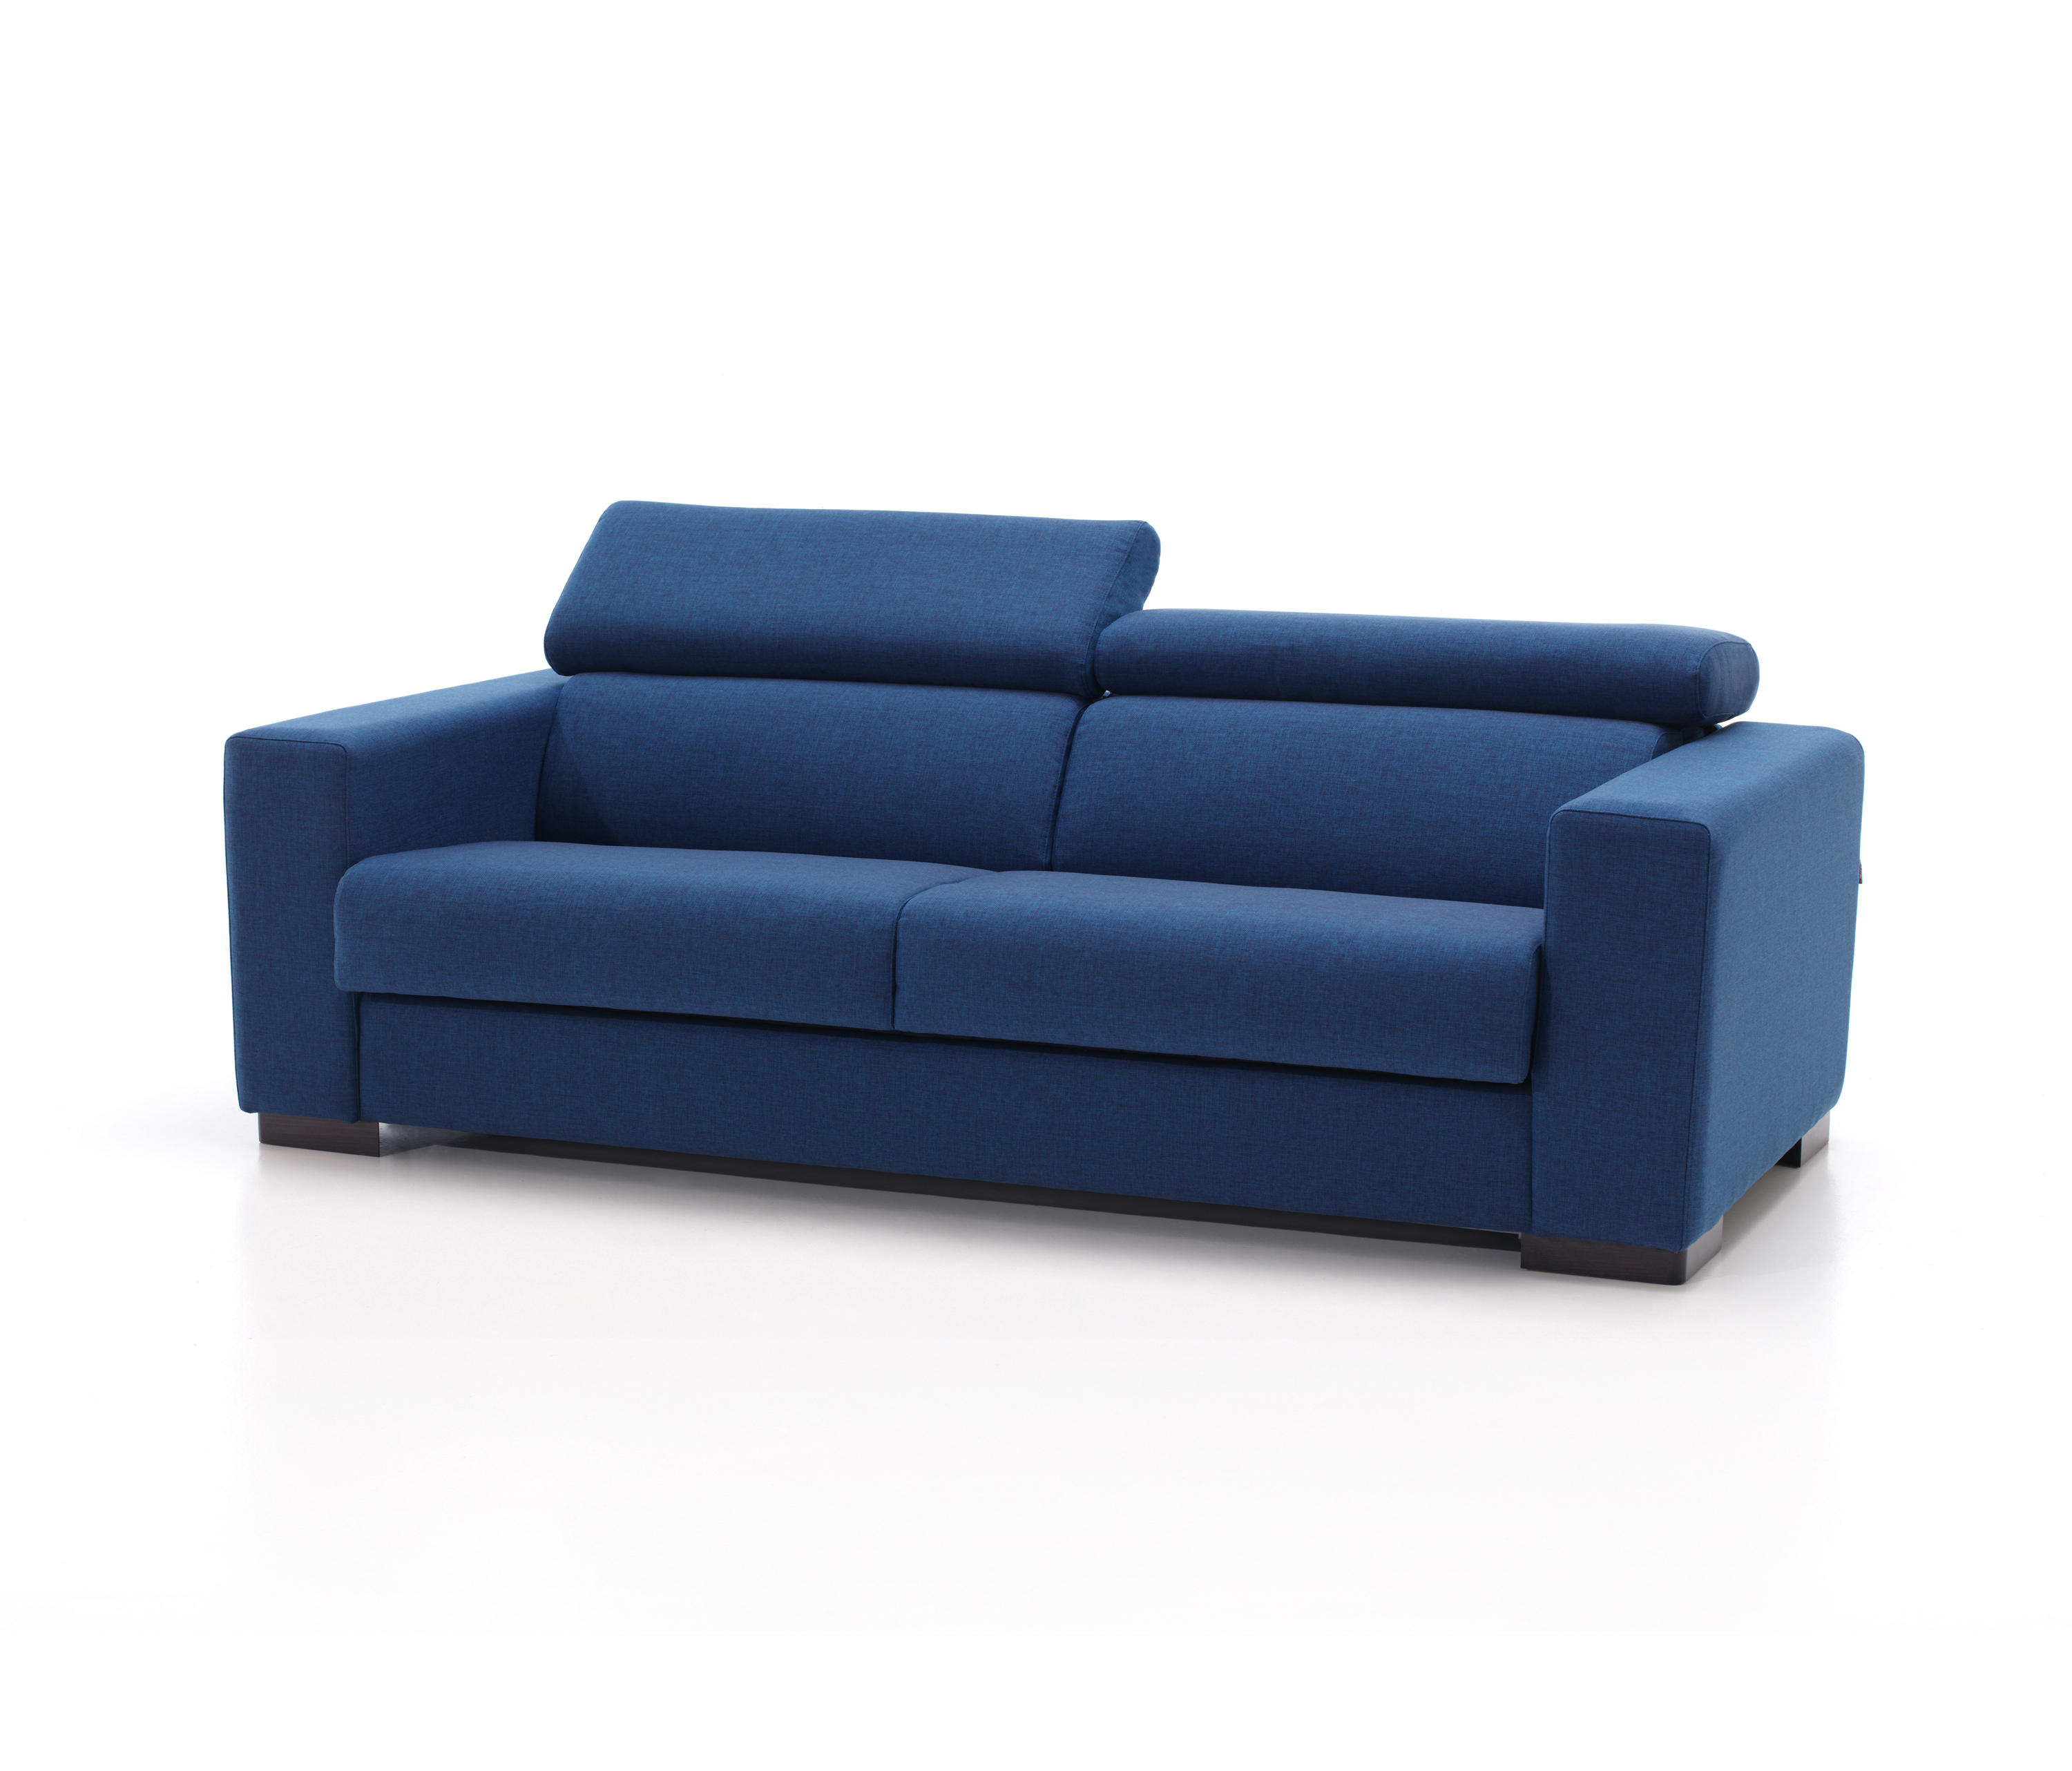 SOFA BEDS High quality designer SOFA BEDS